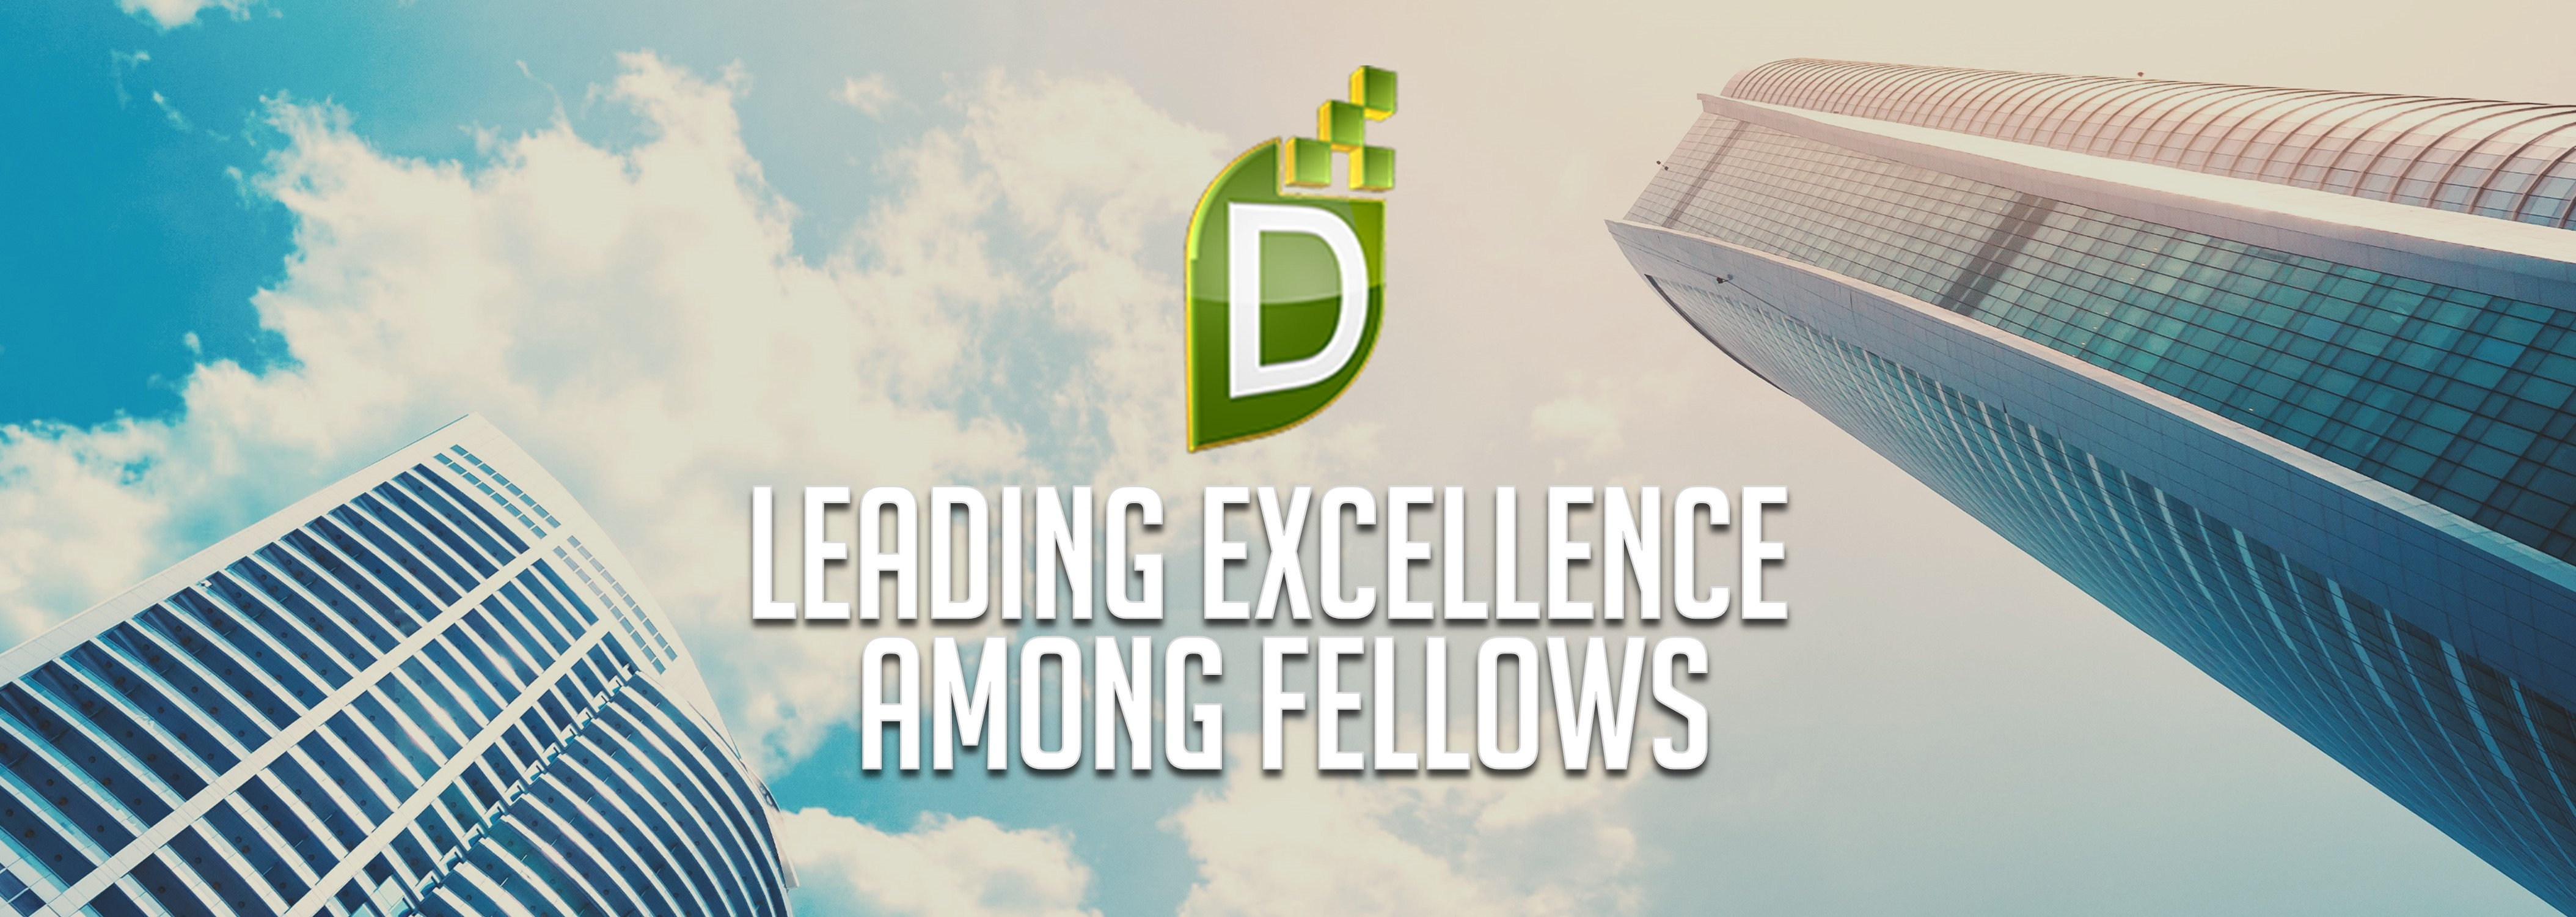 DigiLEAF Leading Excellence Among Fellows